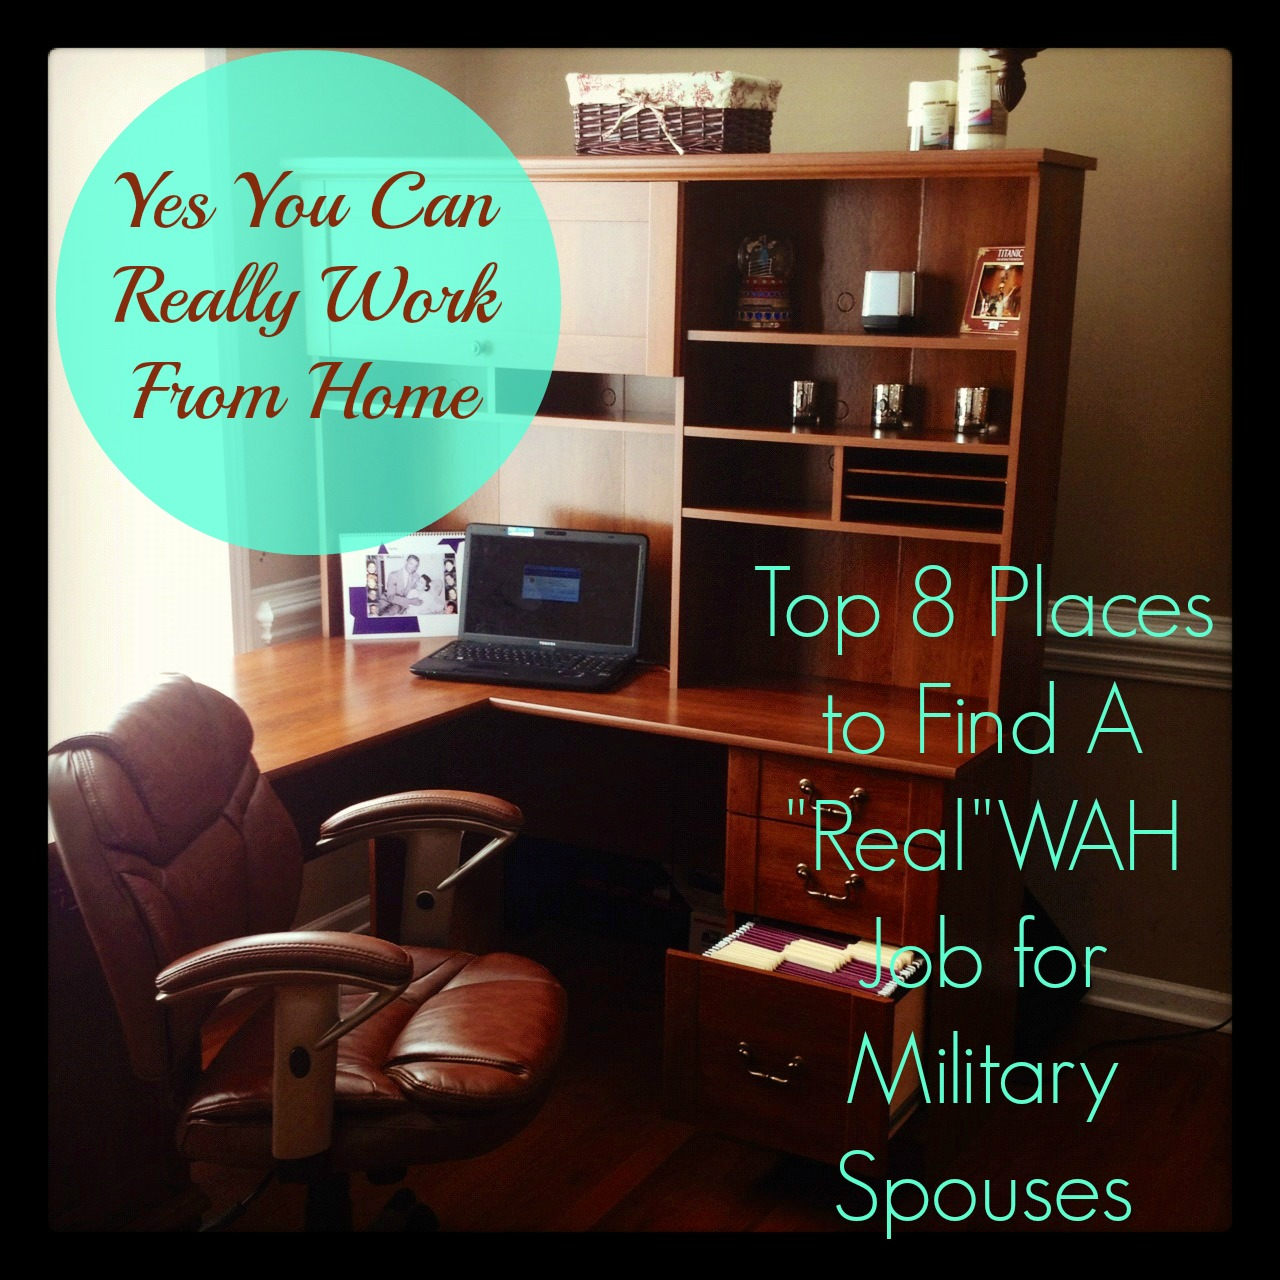 So You Want To Work From Home: Top 8 Places for Military Spouses To Find A Work from Home Job